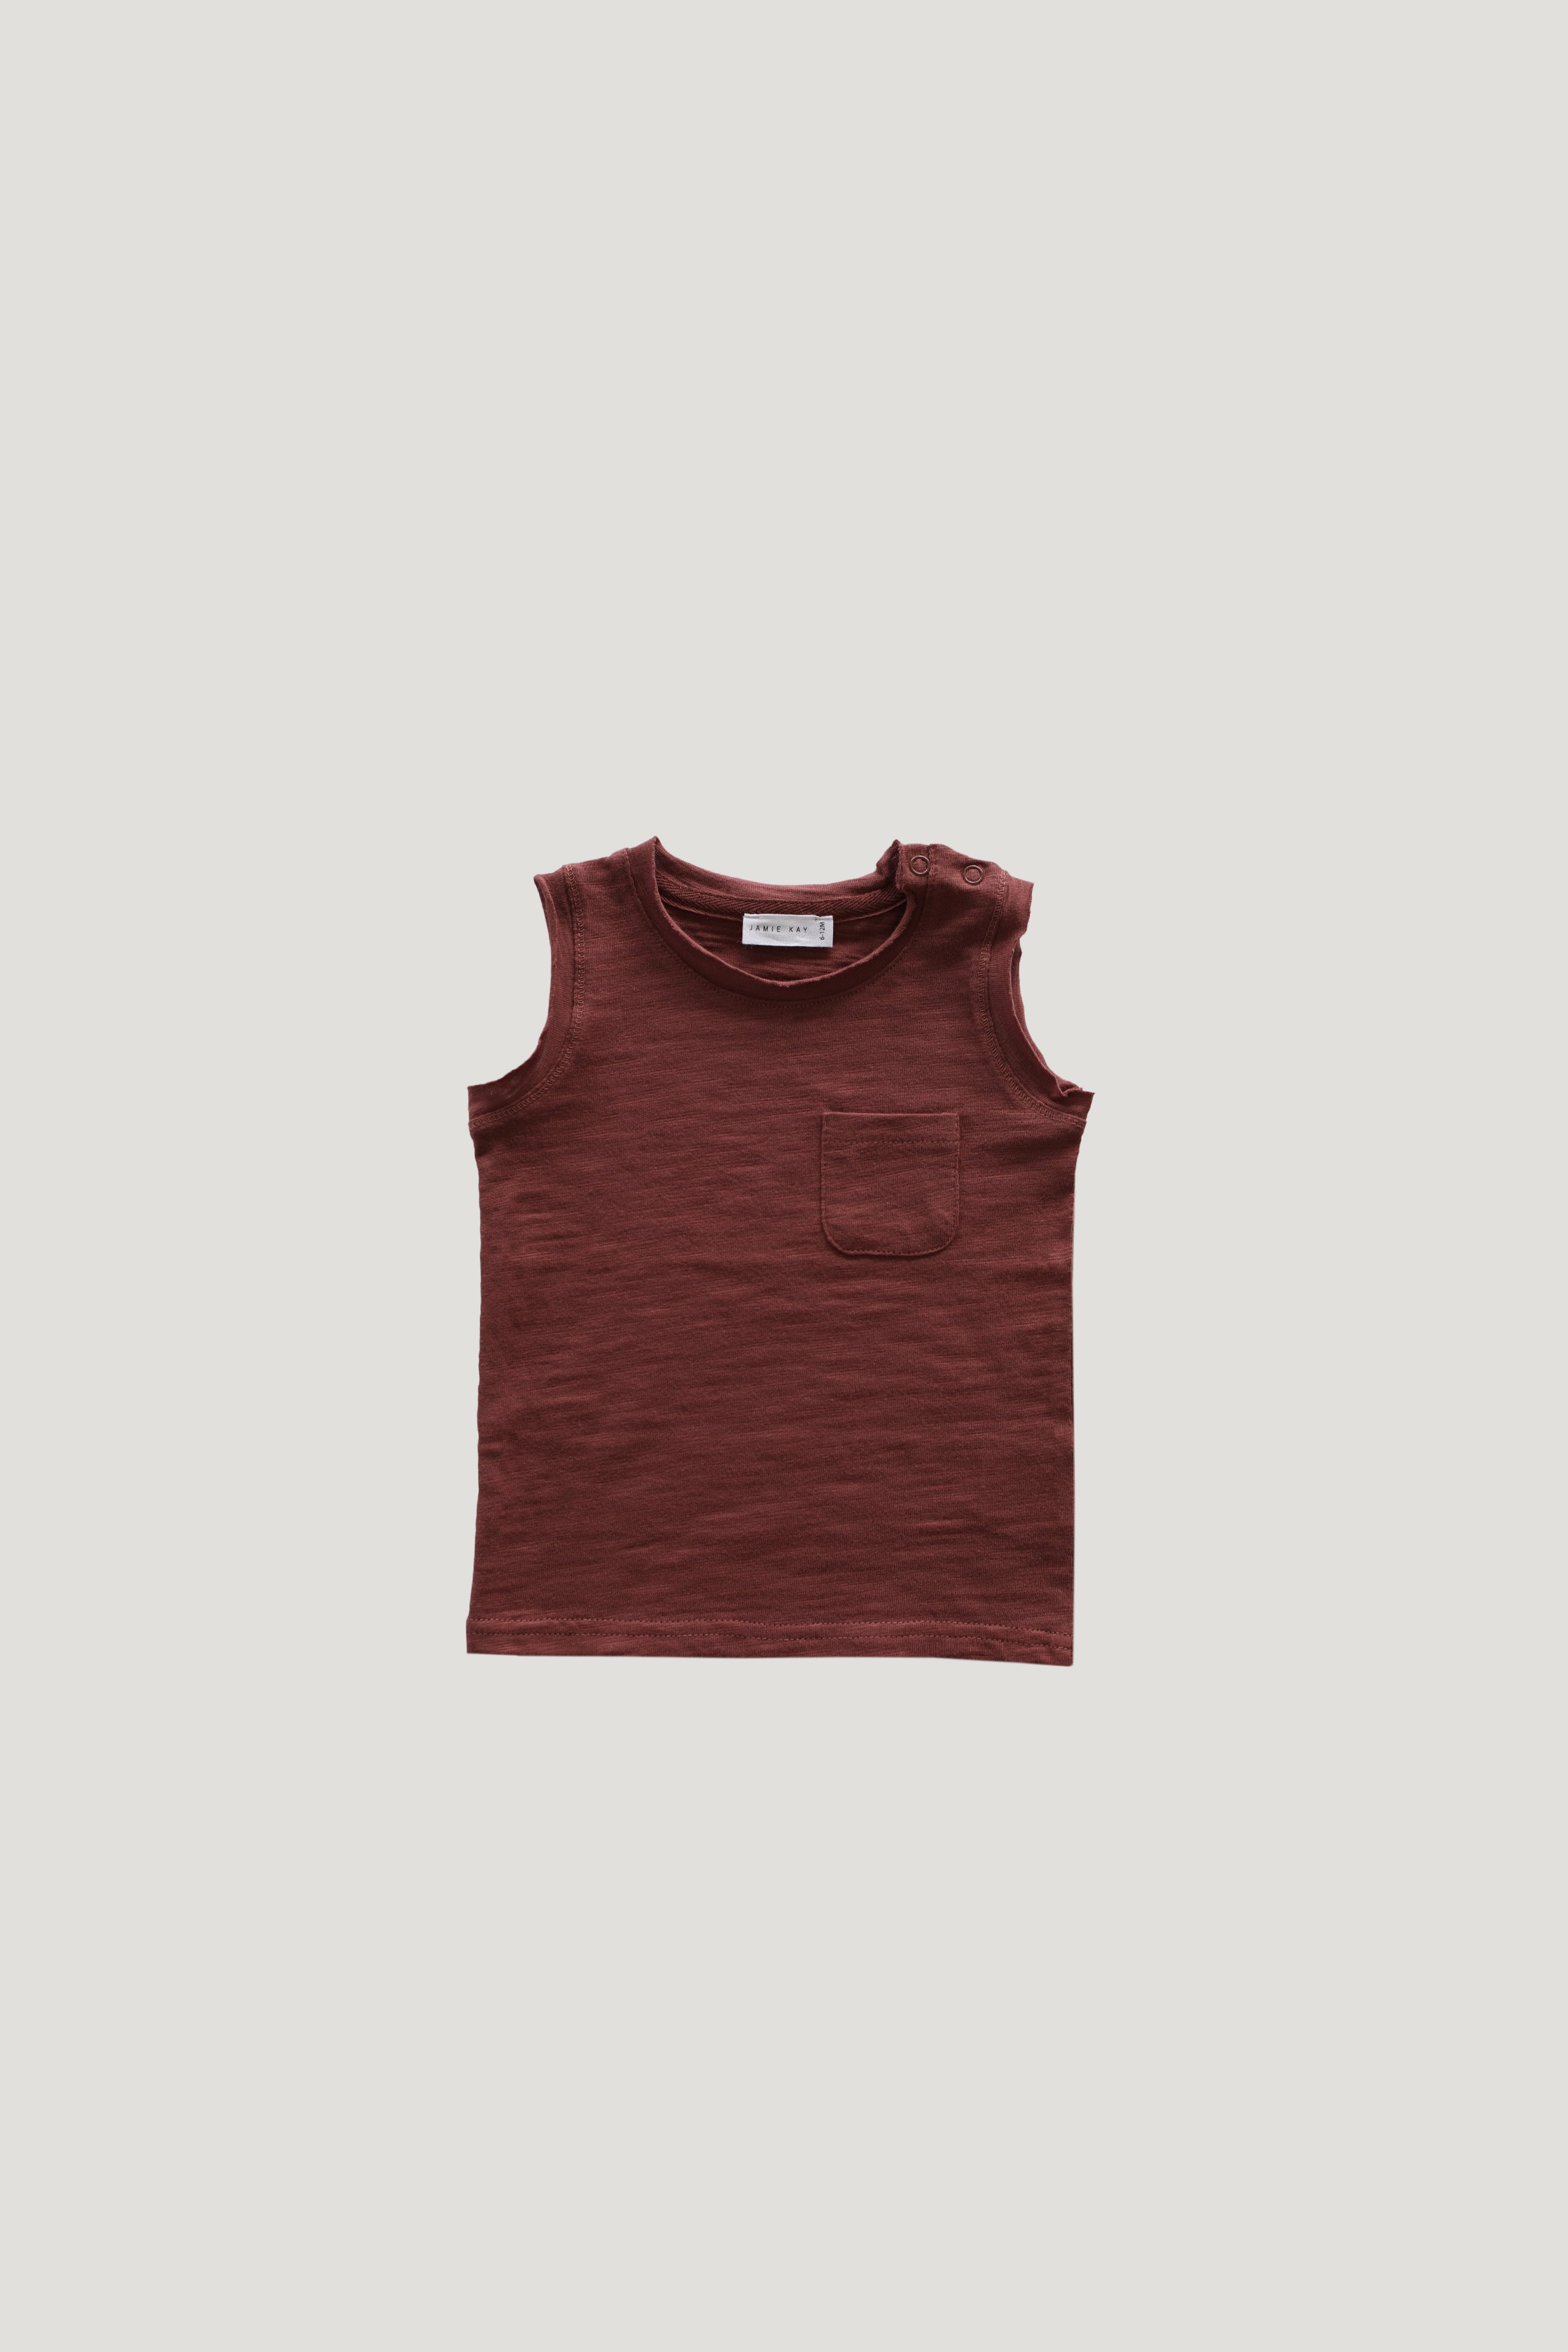 Slub Cotton River Tank - Clay